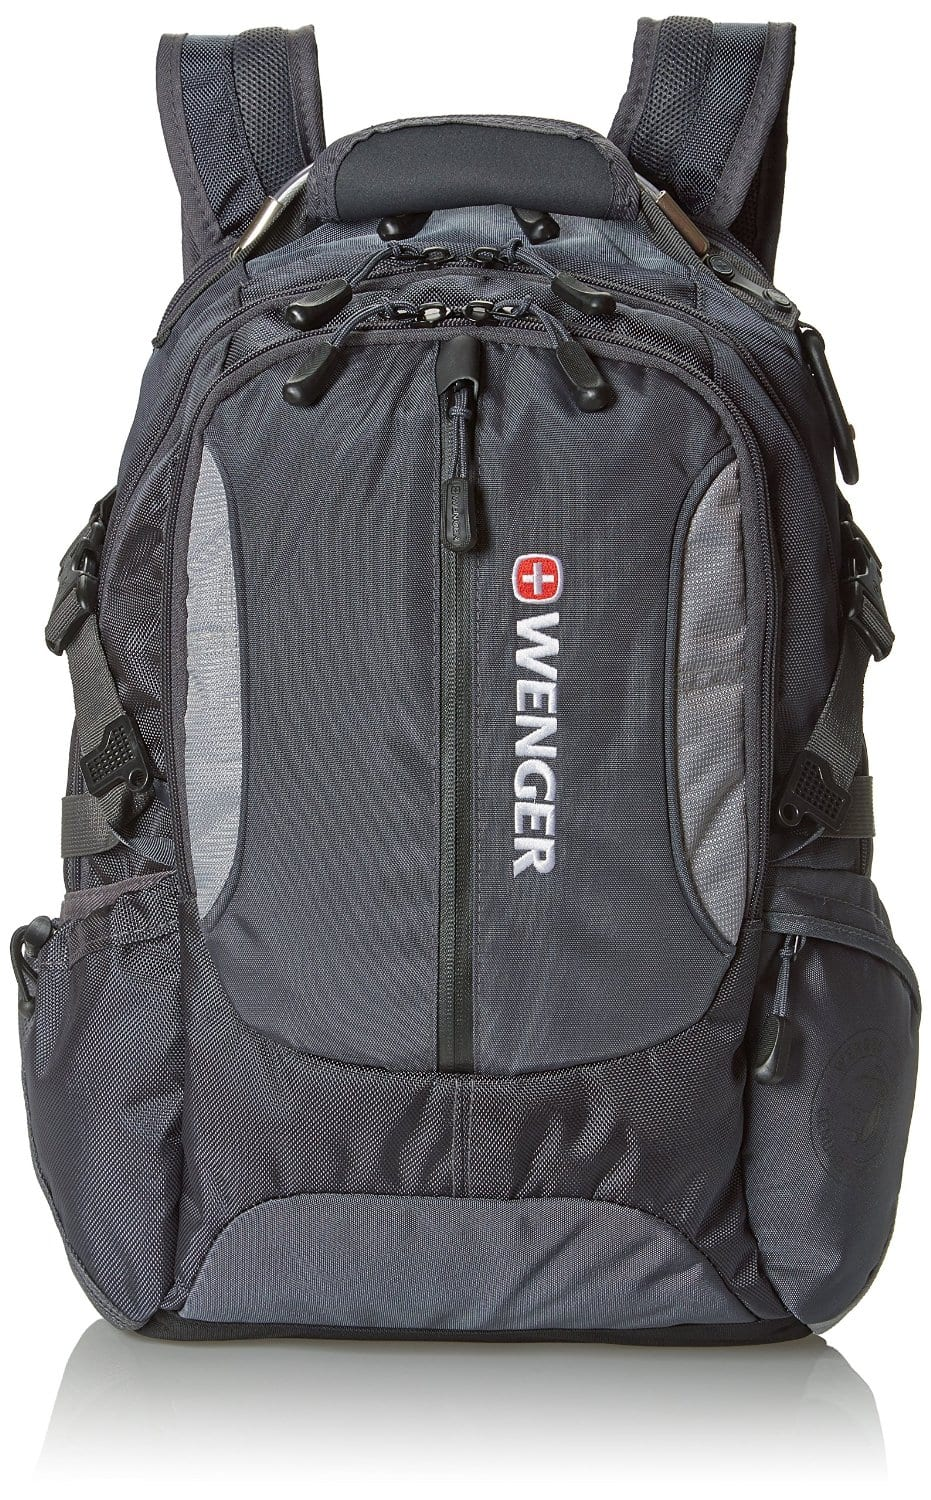 Wenger SA1537 SwissGear Laptop Backpack (Grey) $23.80 + Free Shipping w/ Prime Amazon.com